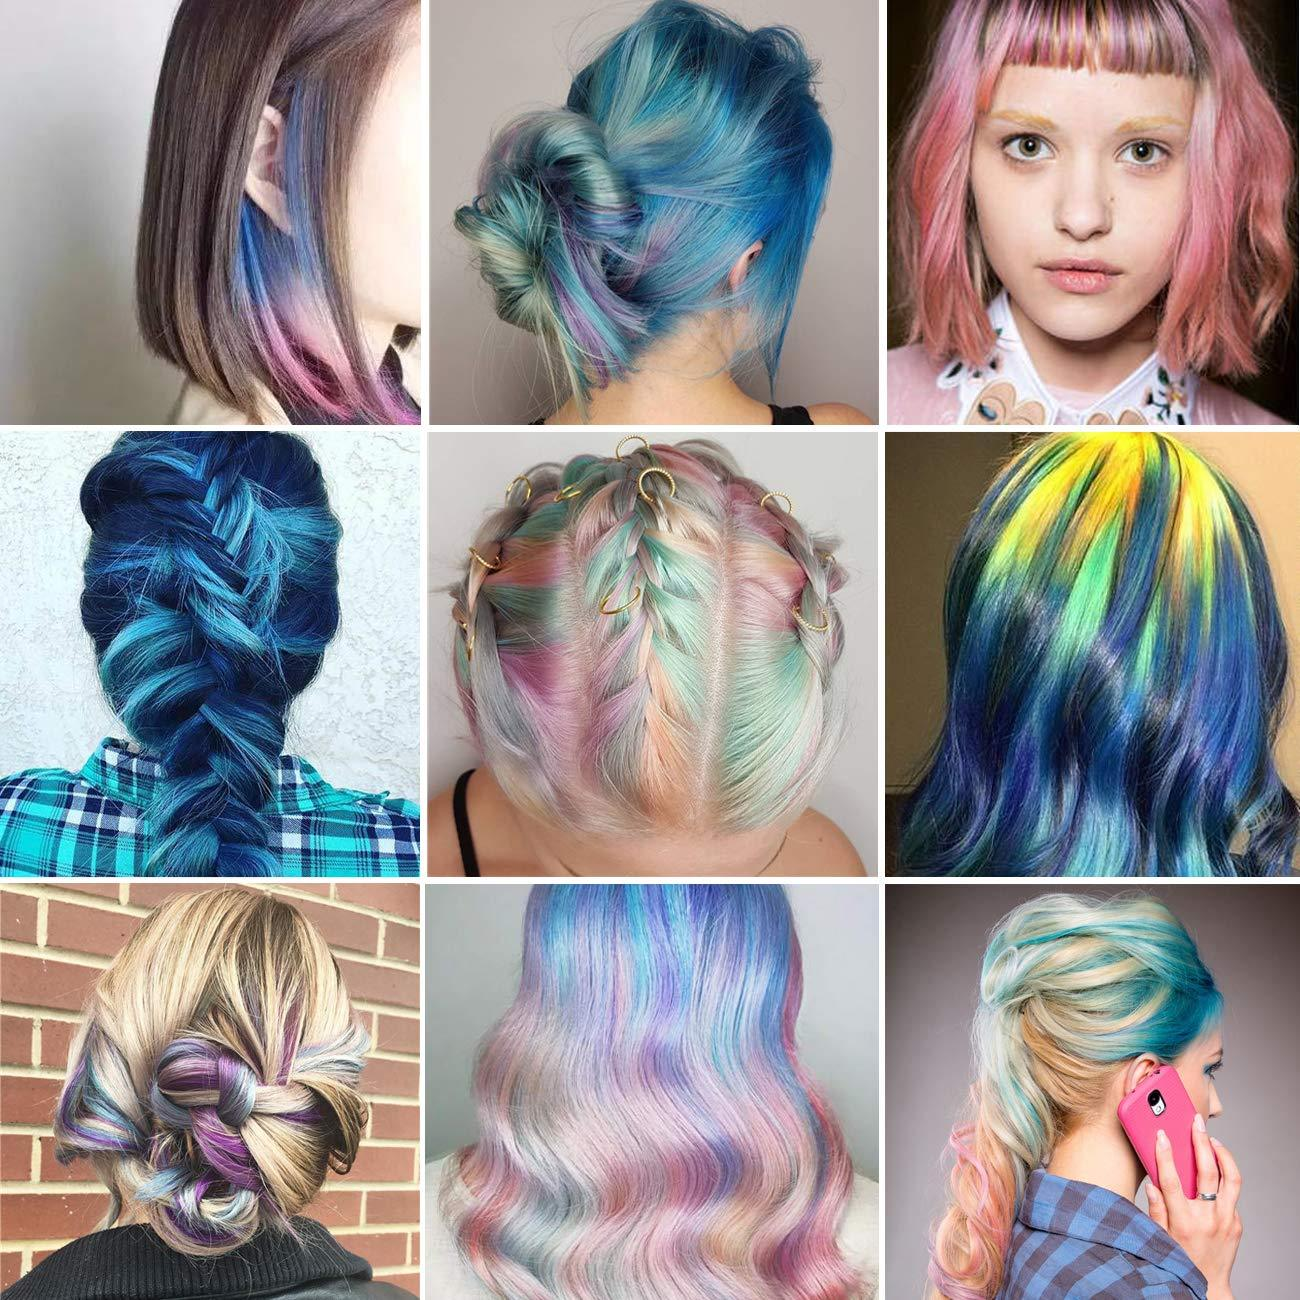 10 Colors Hair Dyeing,Halloween Christmas Cosplay Parties